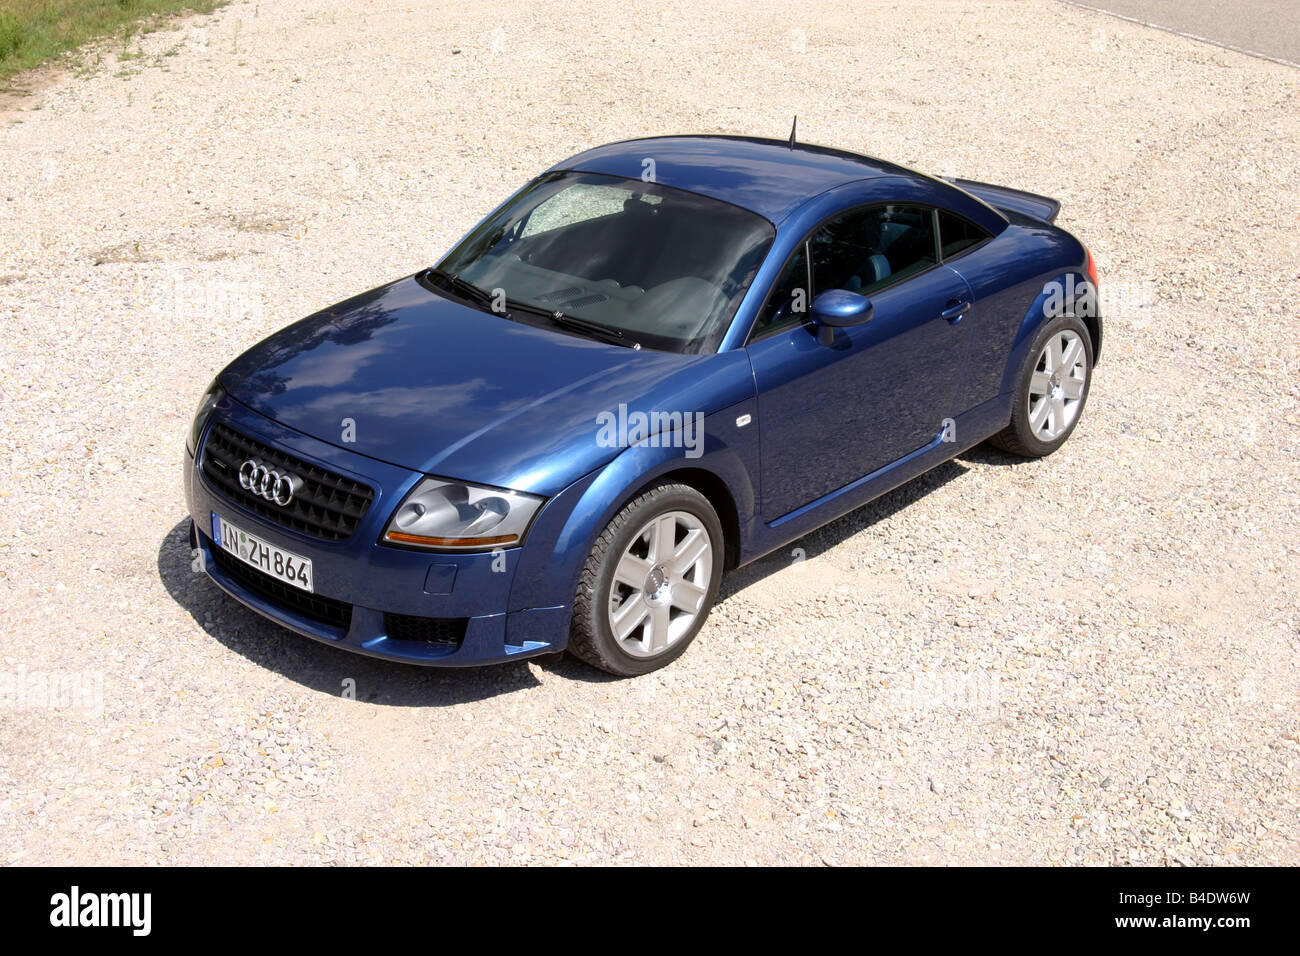 Car, Audi TT 3.2, coupe, roadster, model year 2003-, blue, standing, upholding, diagonal from the front/oben Stock Photo